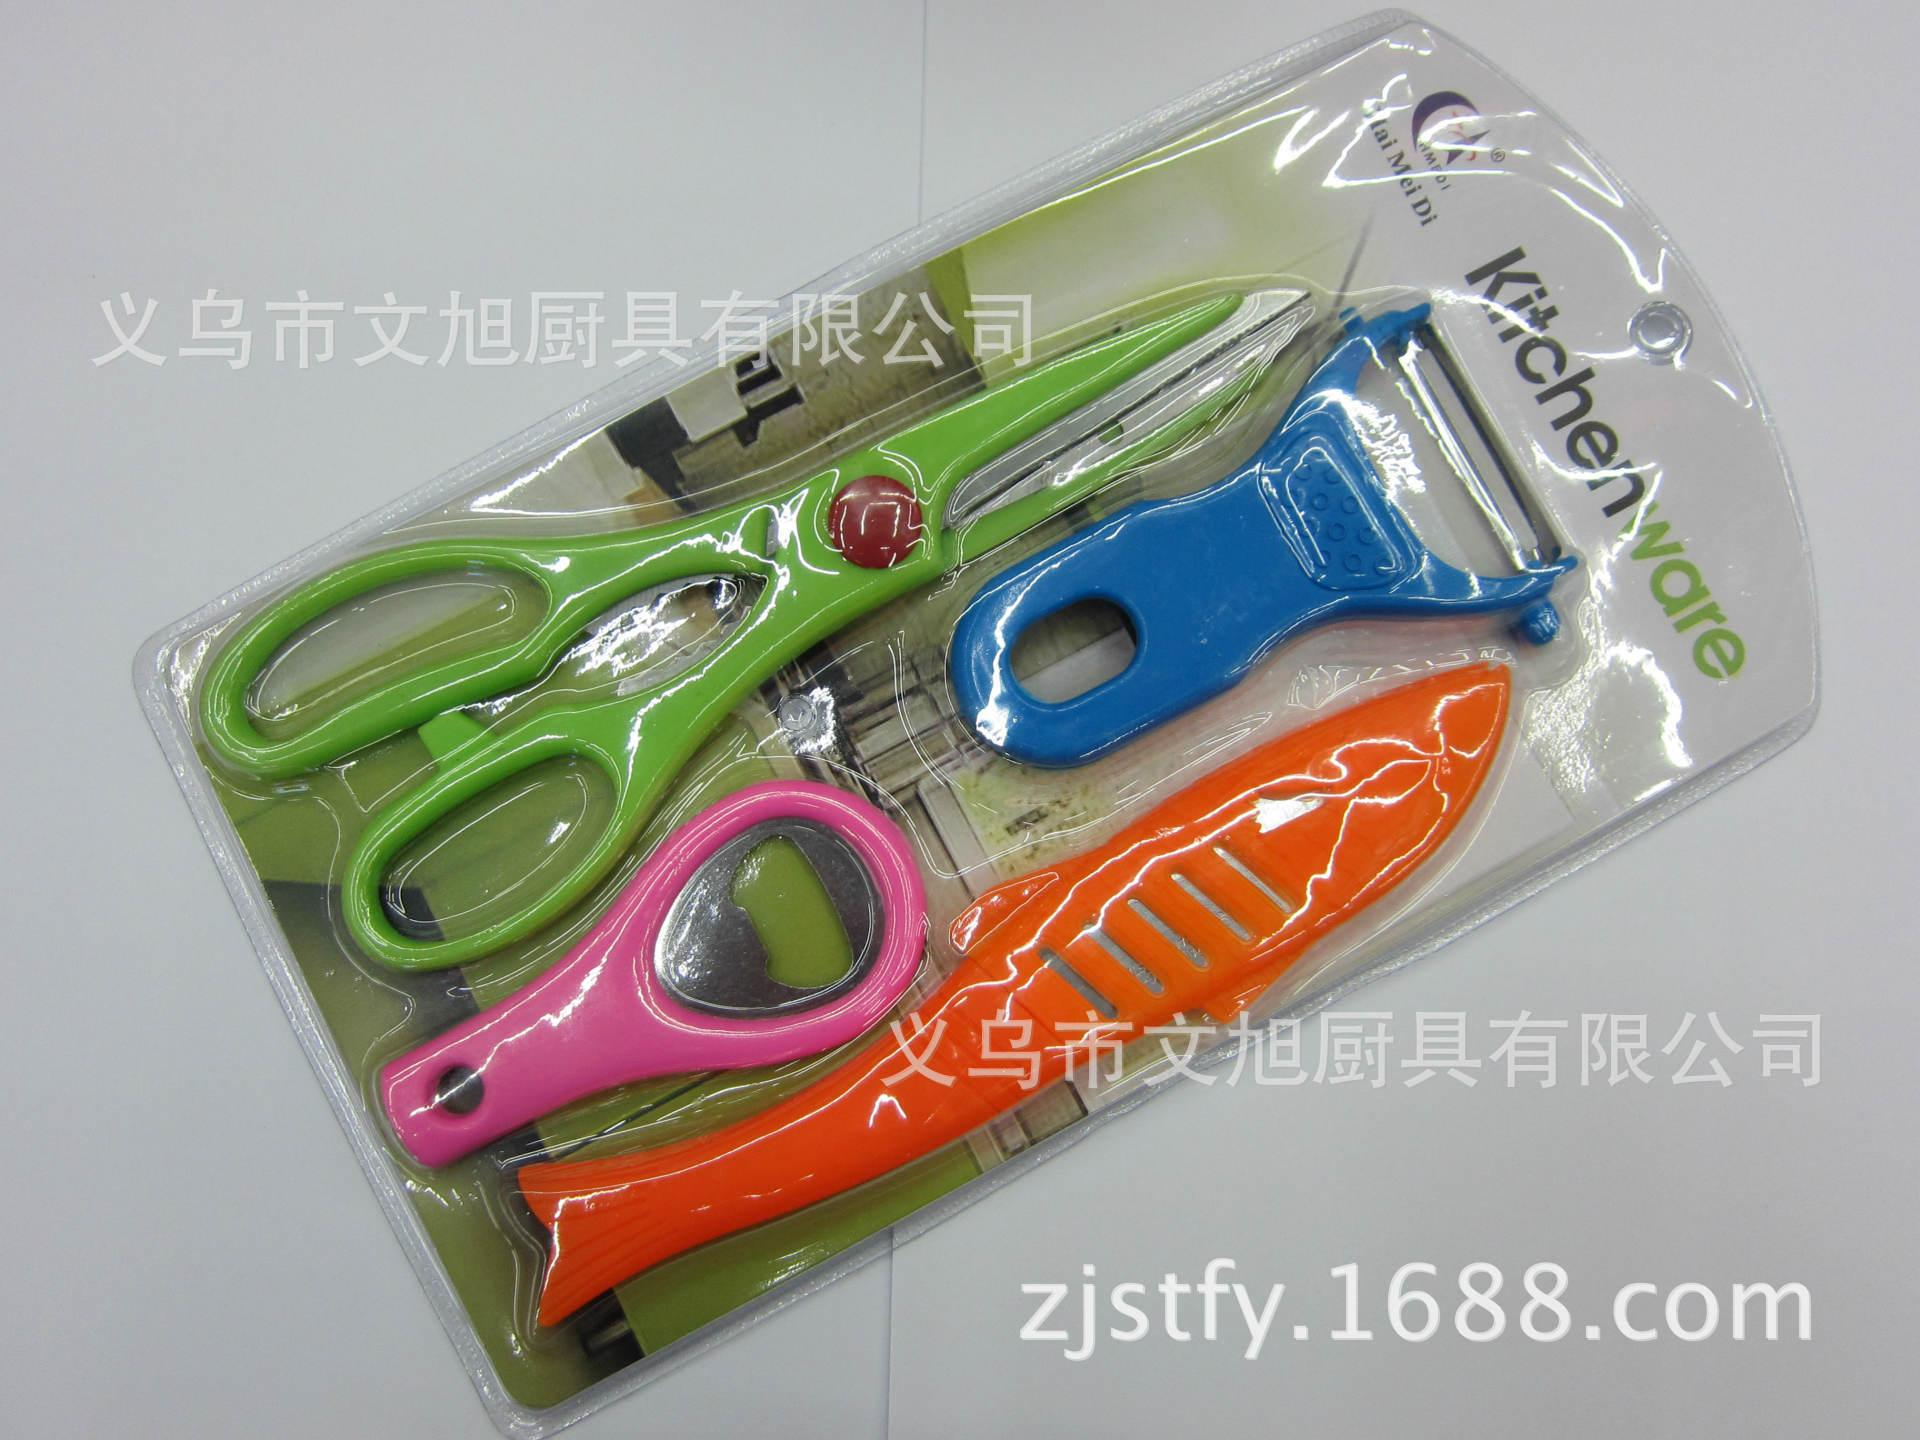 Spot Supplies Double Blister Forbici da imballaggio Peeler Bottle Opener Fruits Knife Suit